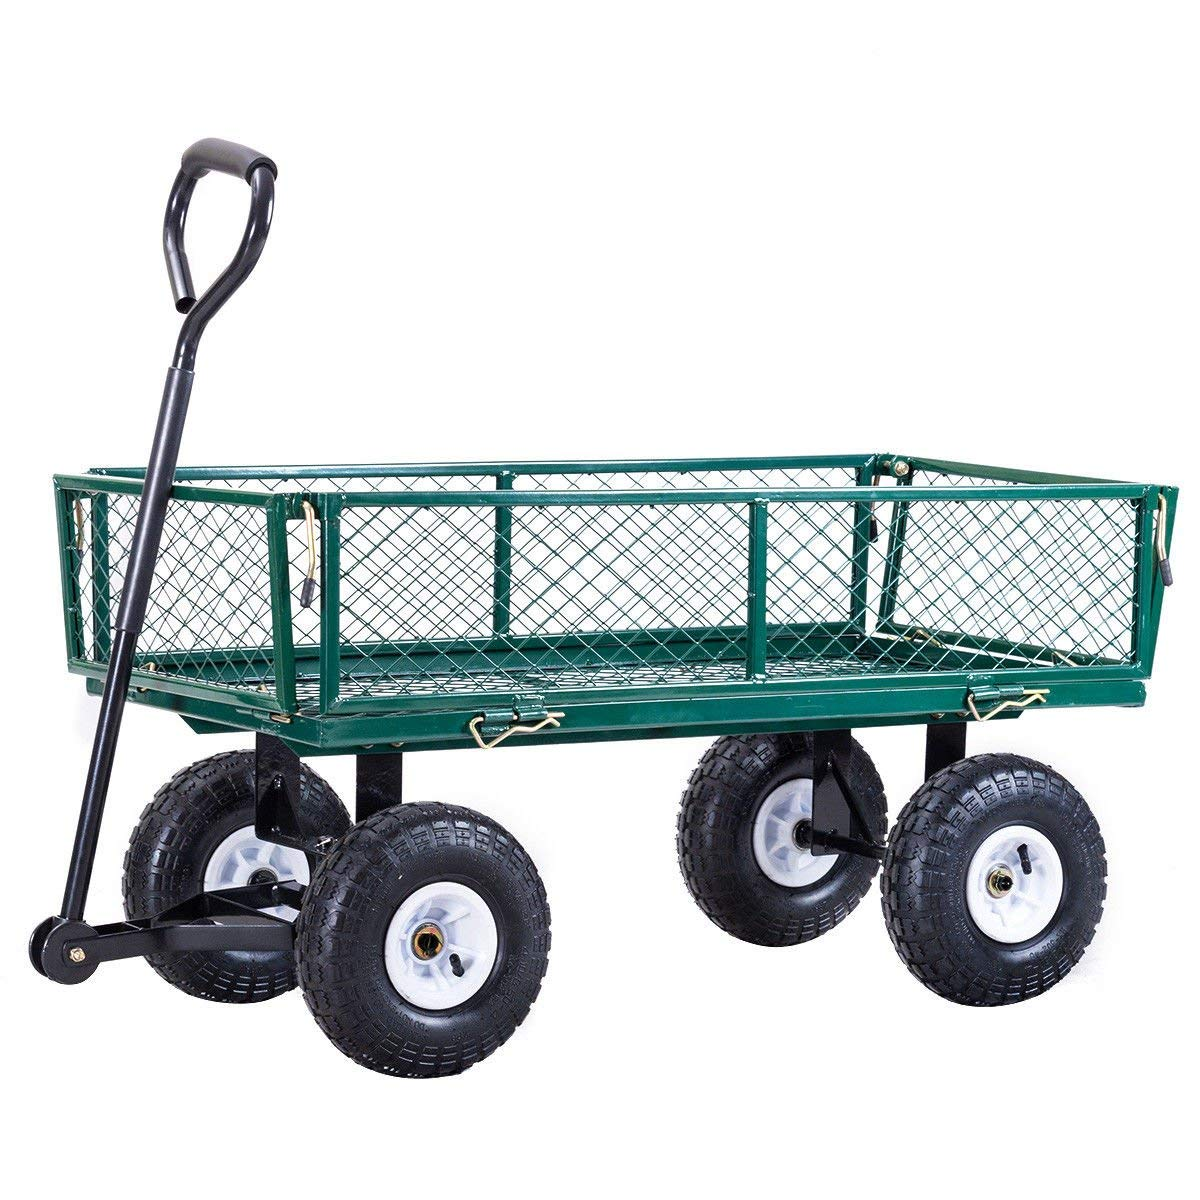 Globe House Products GHP 330-Lbs Capacity Green Steel Frame Garden Utility Cart Wagon with Rubber Wheels